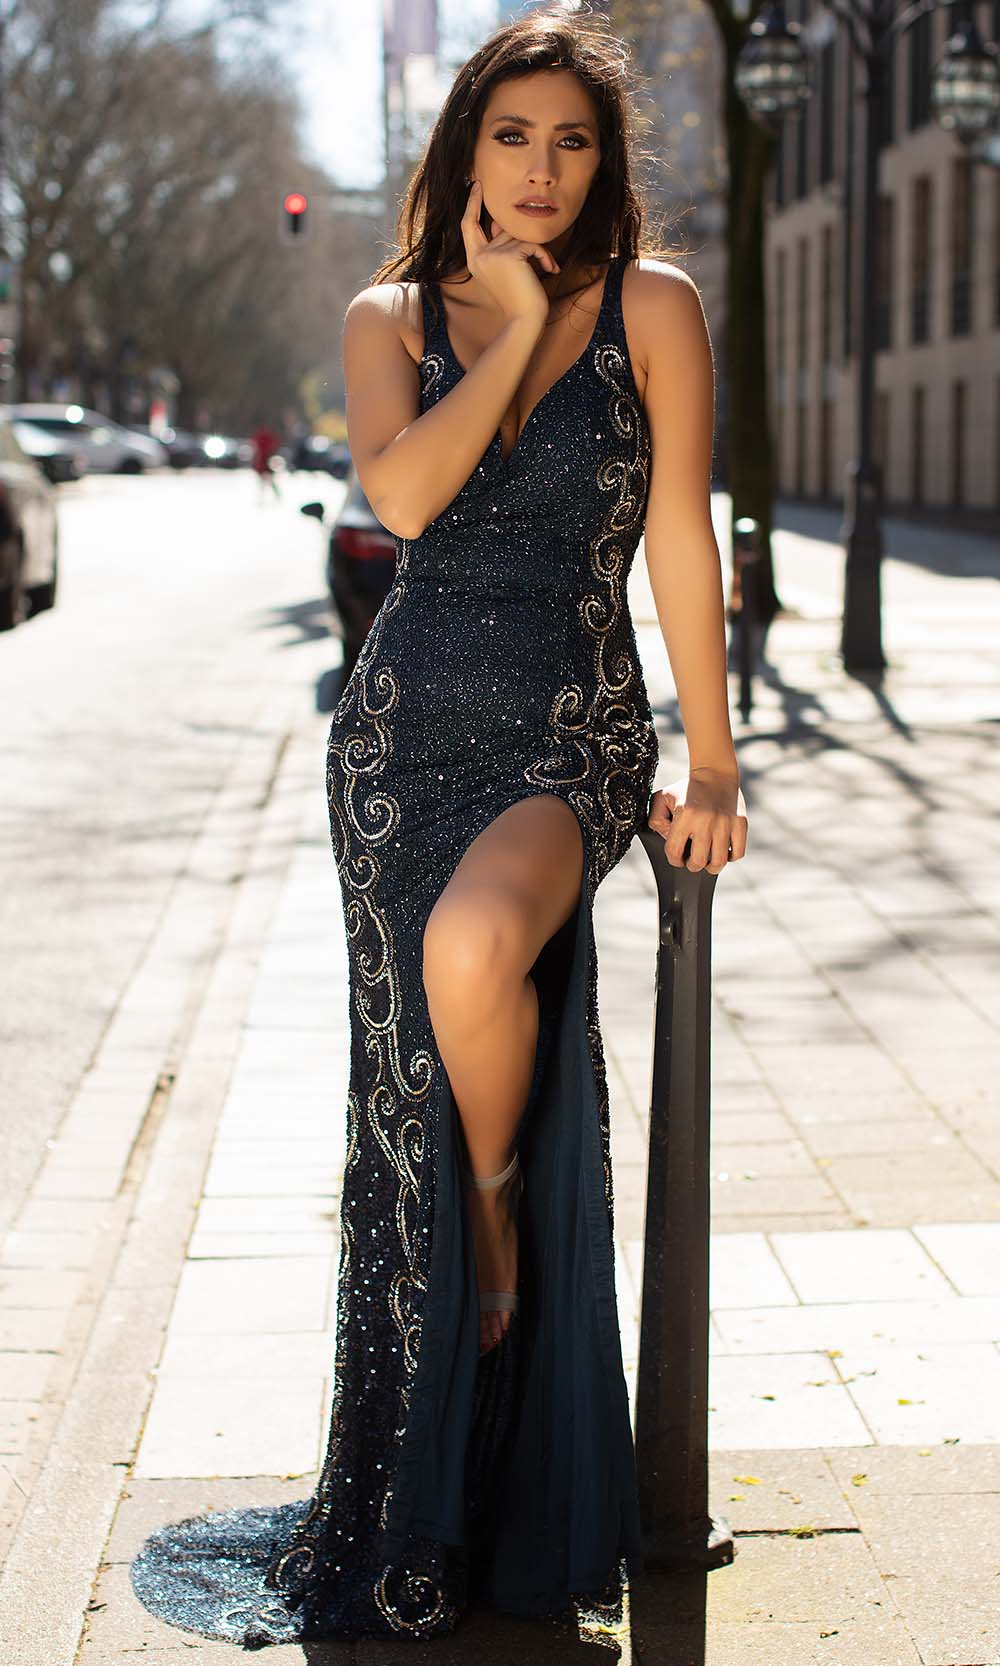 Chic and Holland - AN1406 Long Beaded Strappy Back Dress from Chic and Holland